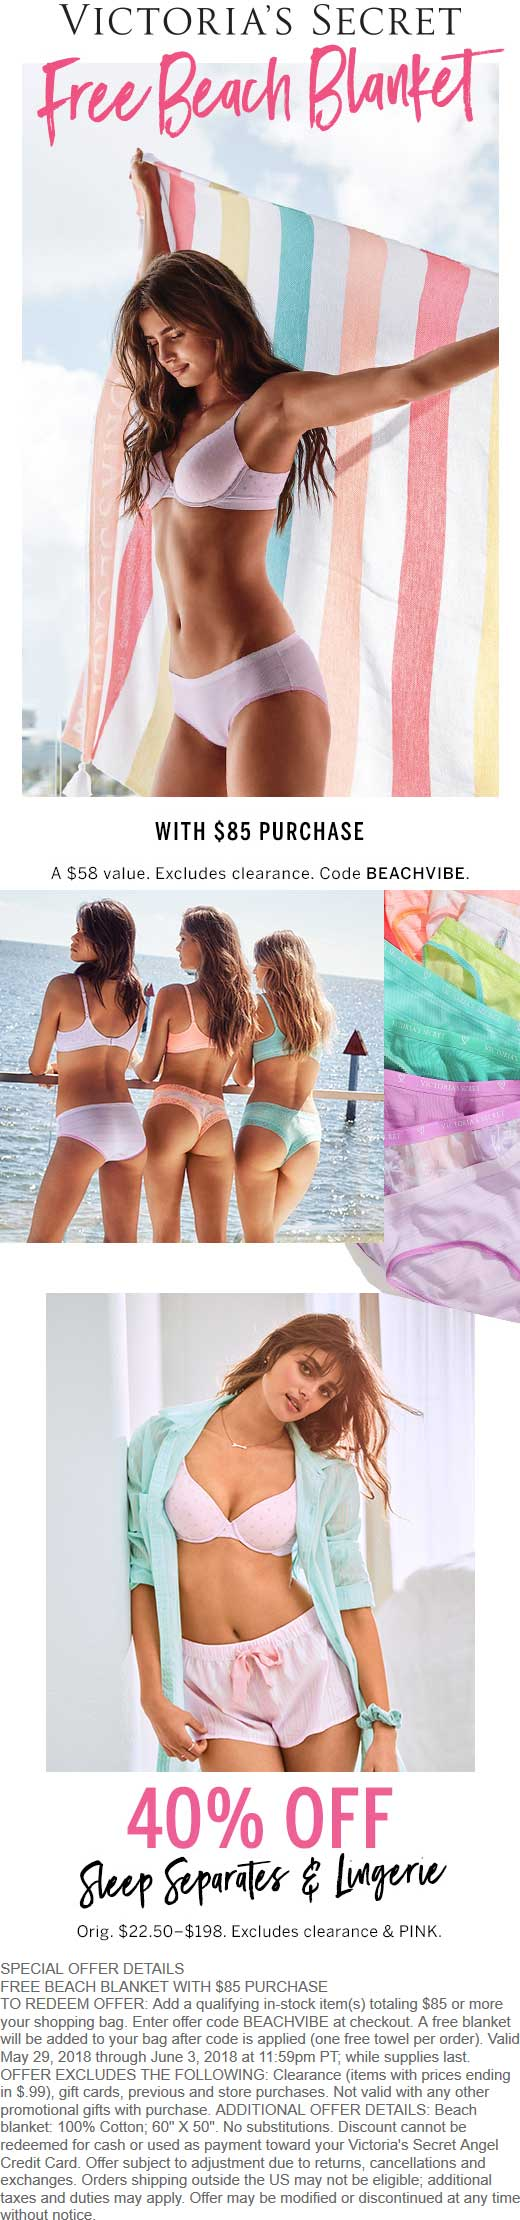 Victorias Secret Coupon September 2018 Free $58 beach blanket with $85 spent at Victorias Secret, or online via promo code BEACHVIBE